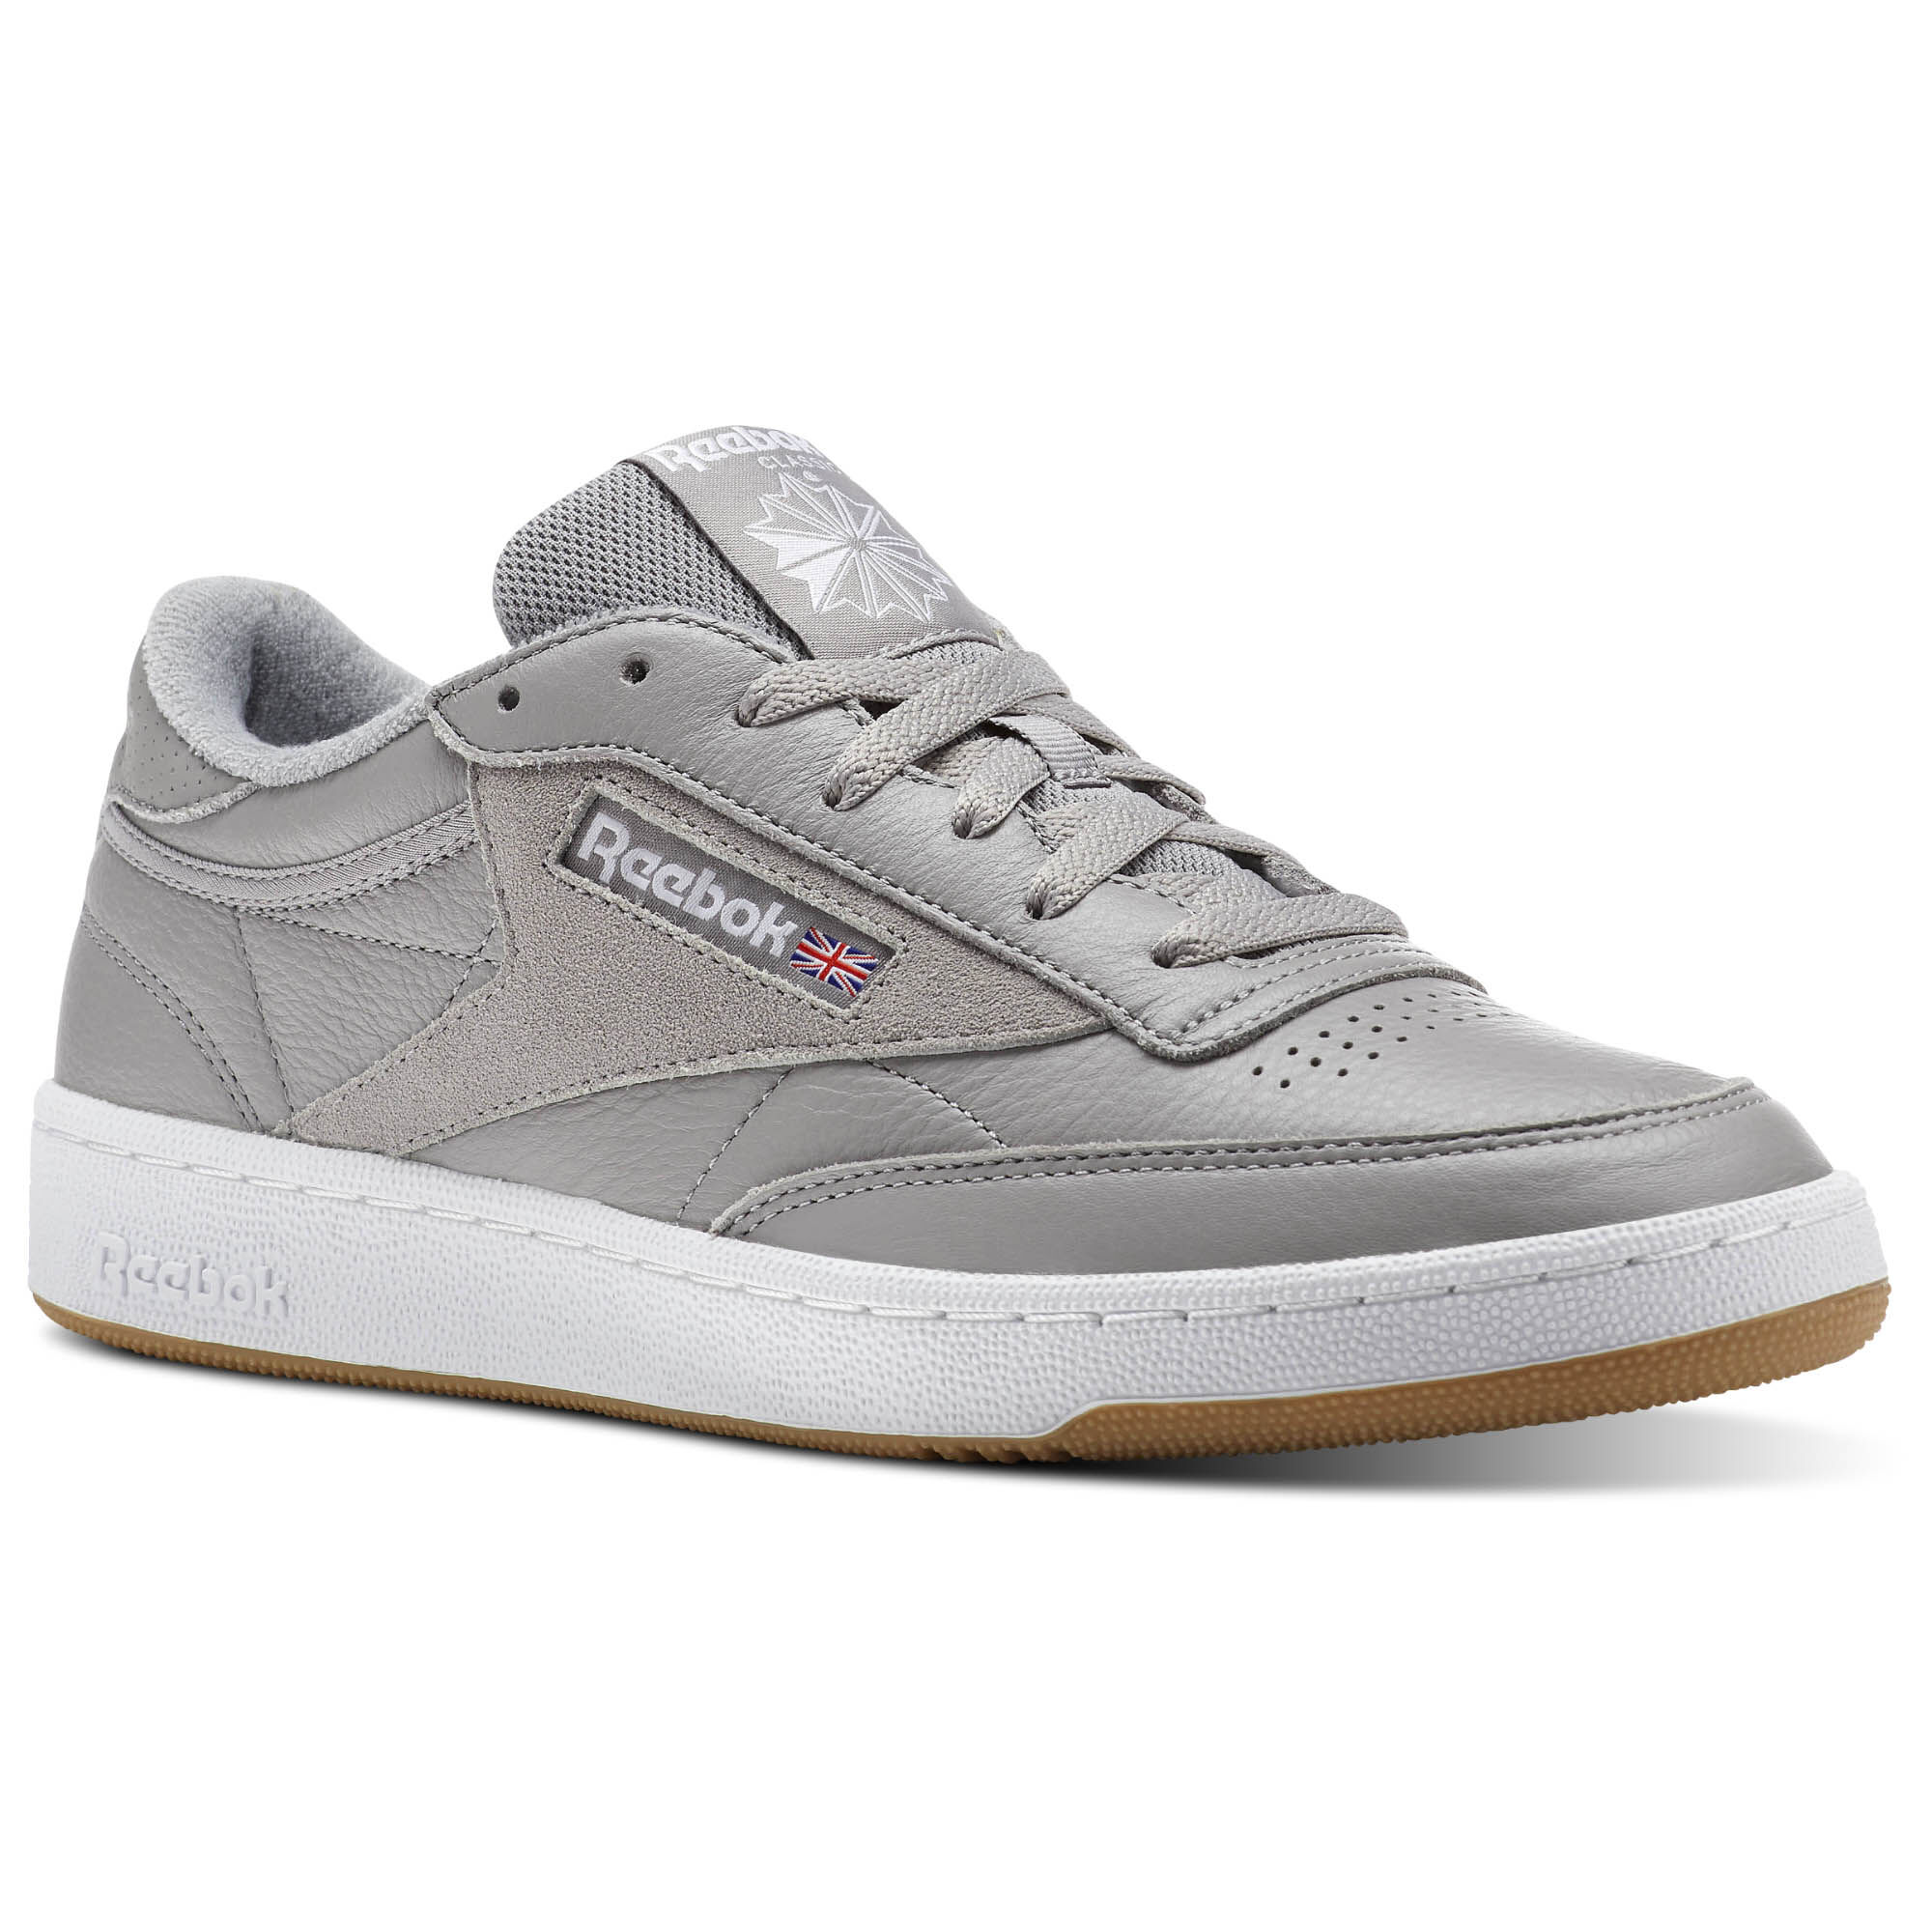 Reebok - Club C 85 ESTL Powder Grey/White/Washed Blue-Gum CM8794